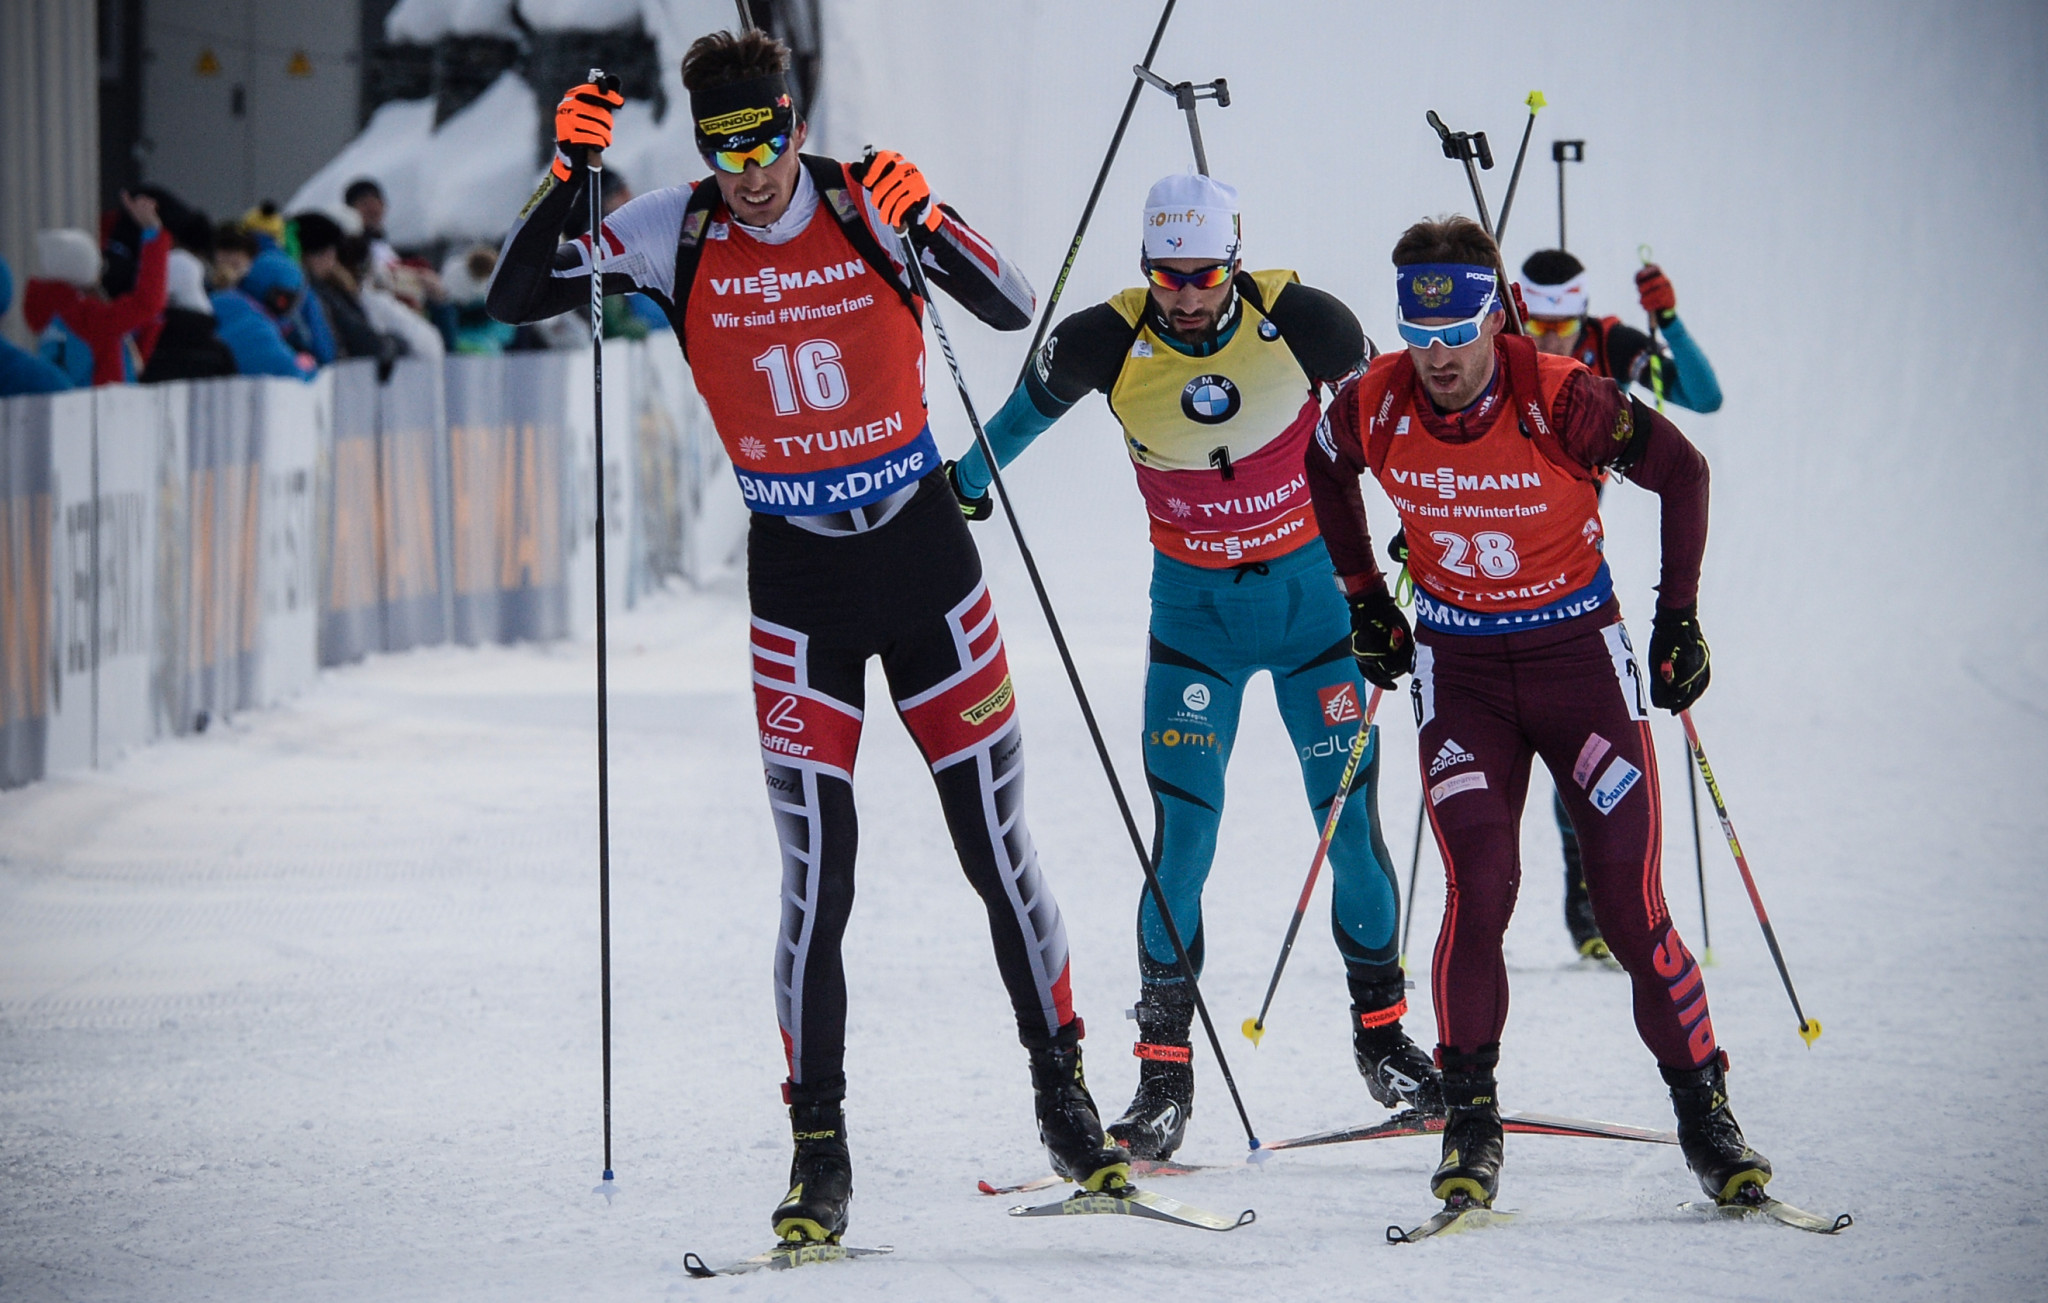 Russia's provisional membership does not affect their participation at major IBU events ©Getty Images